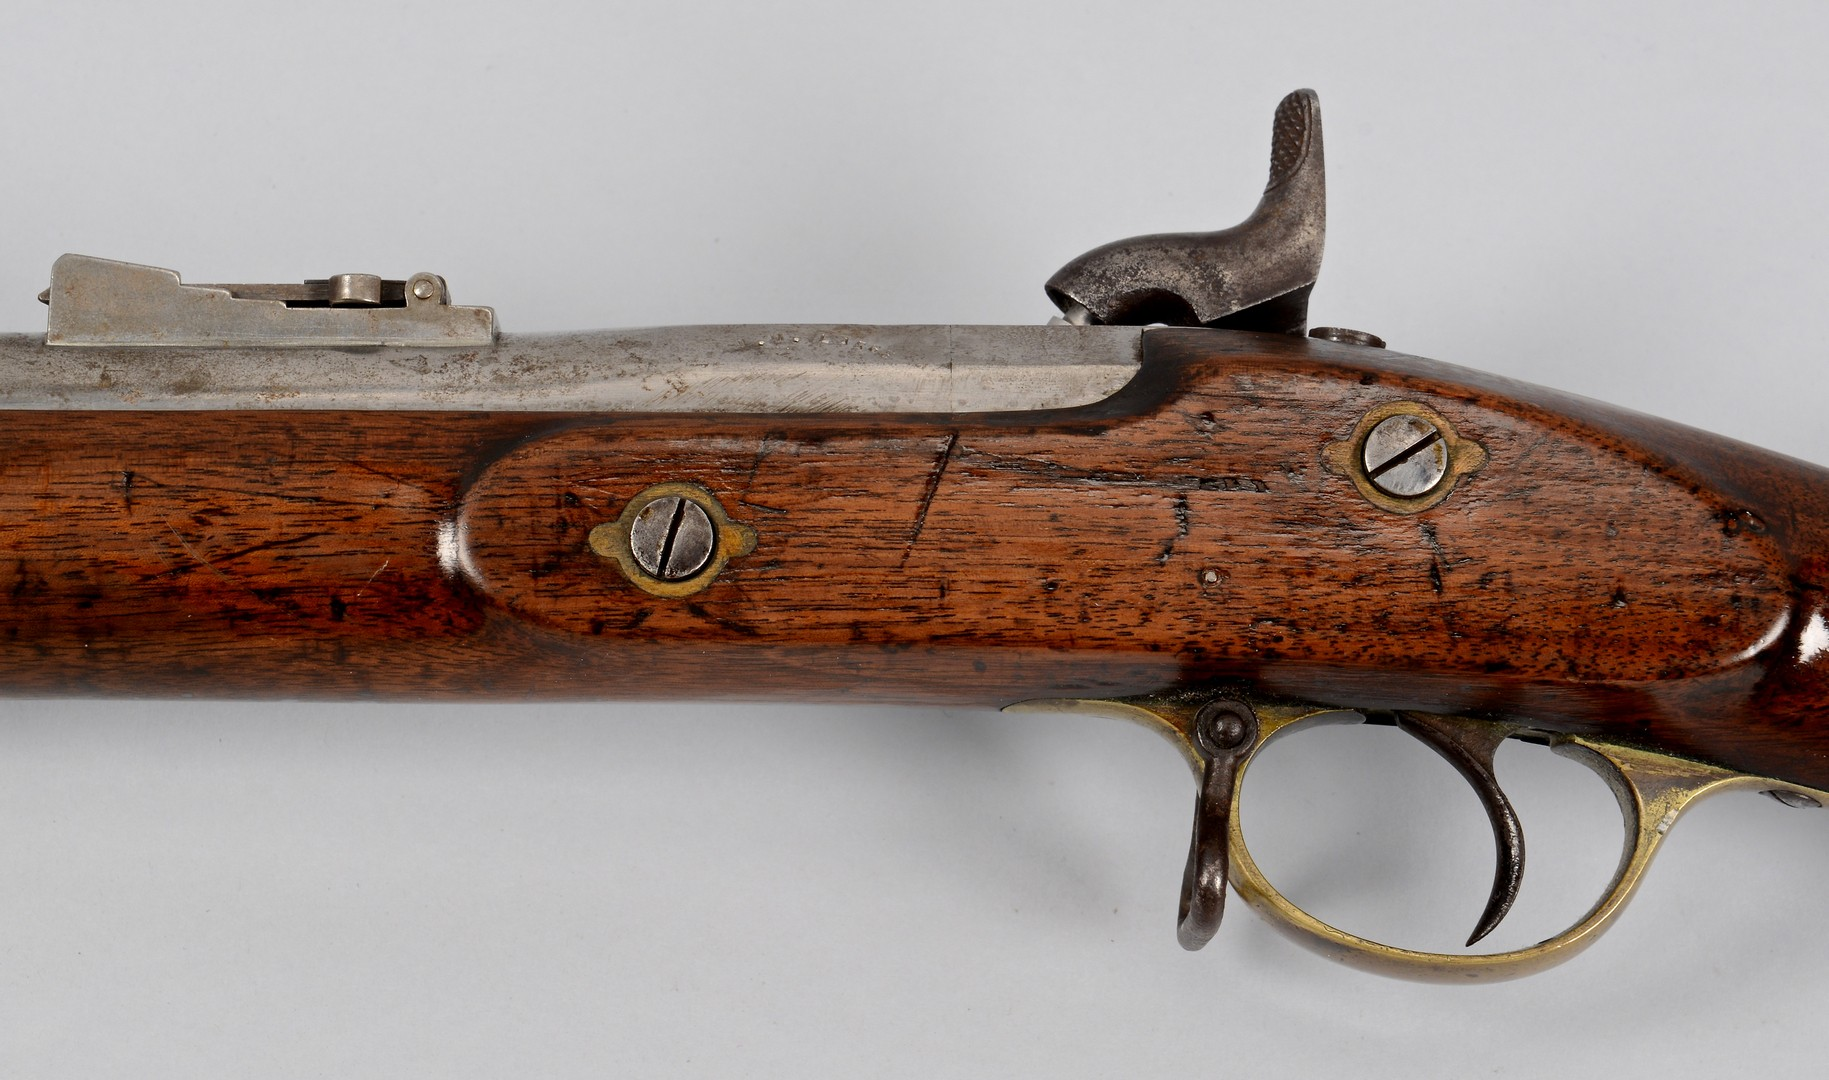 Lot 505: 1863 Victoria Regalius Enfield Rifled Musket